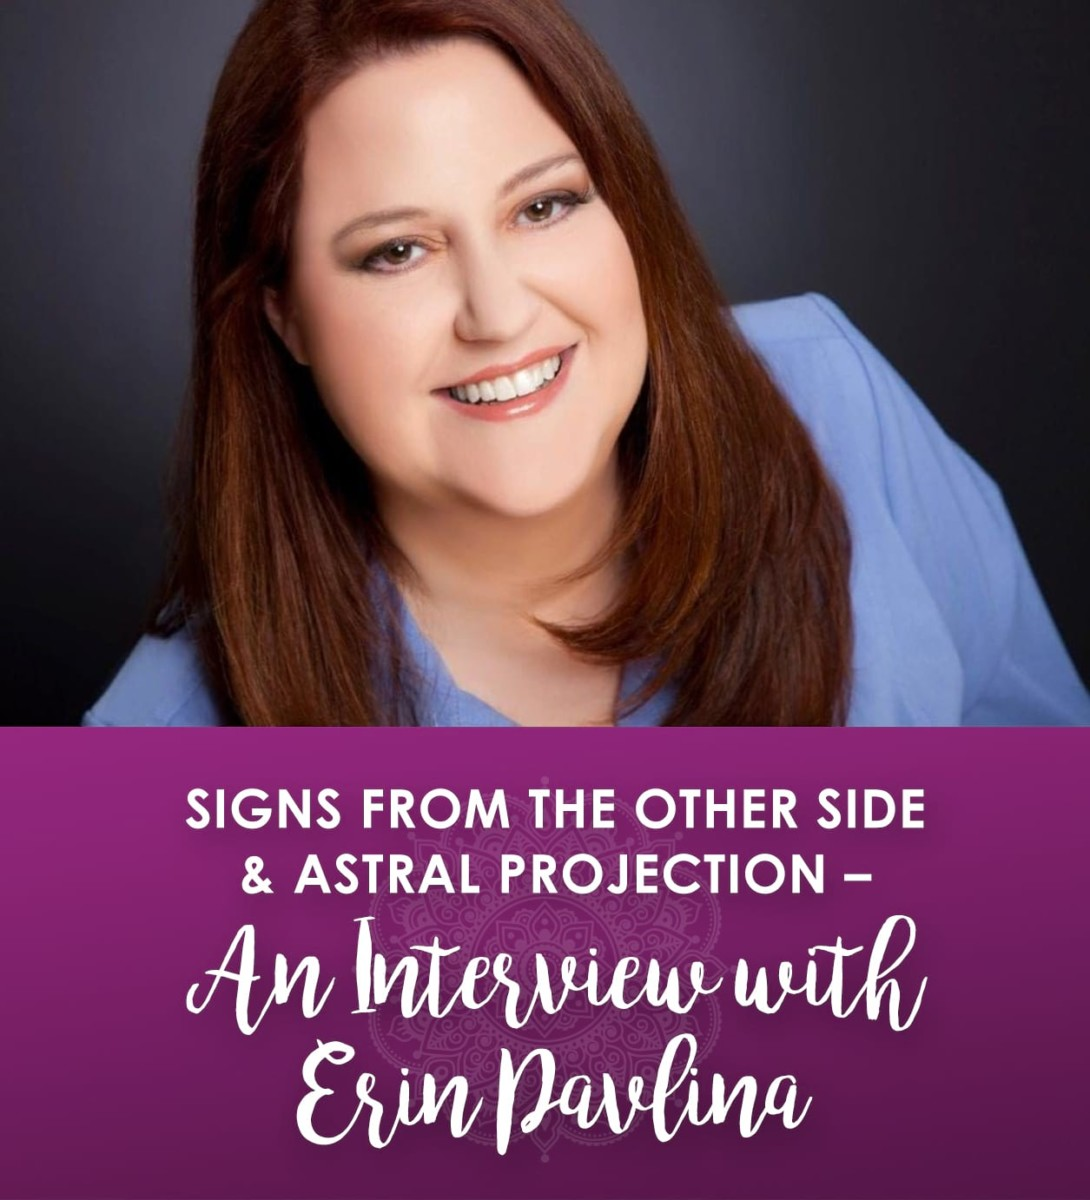 Signs from the Other Side & Astral Projection - An Interview with Erin Pavlina